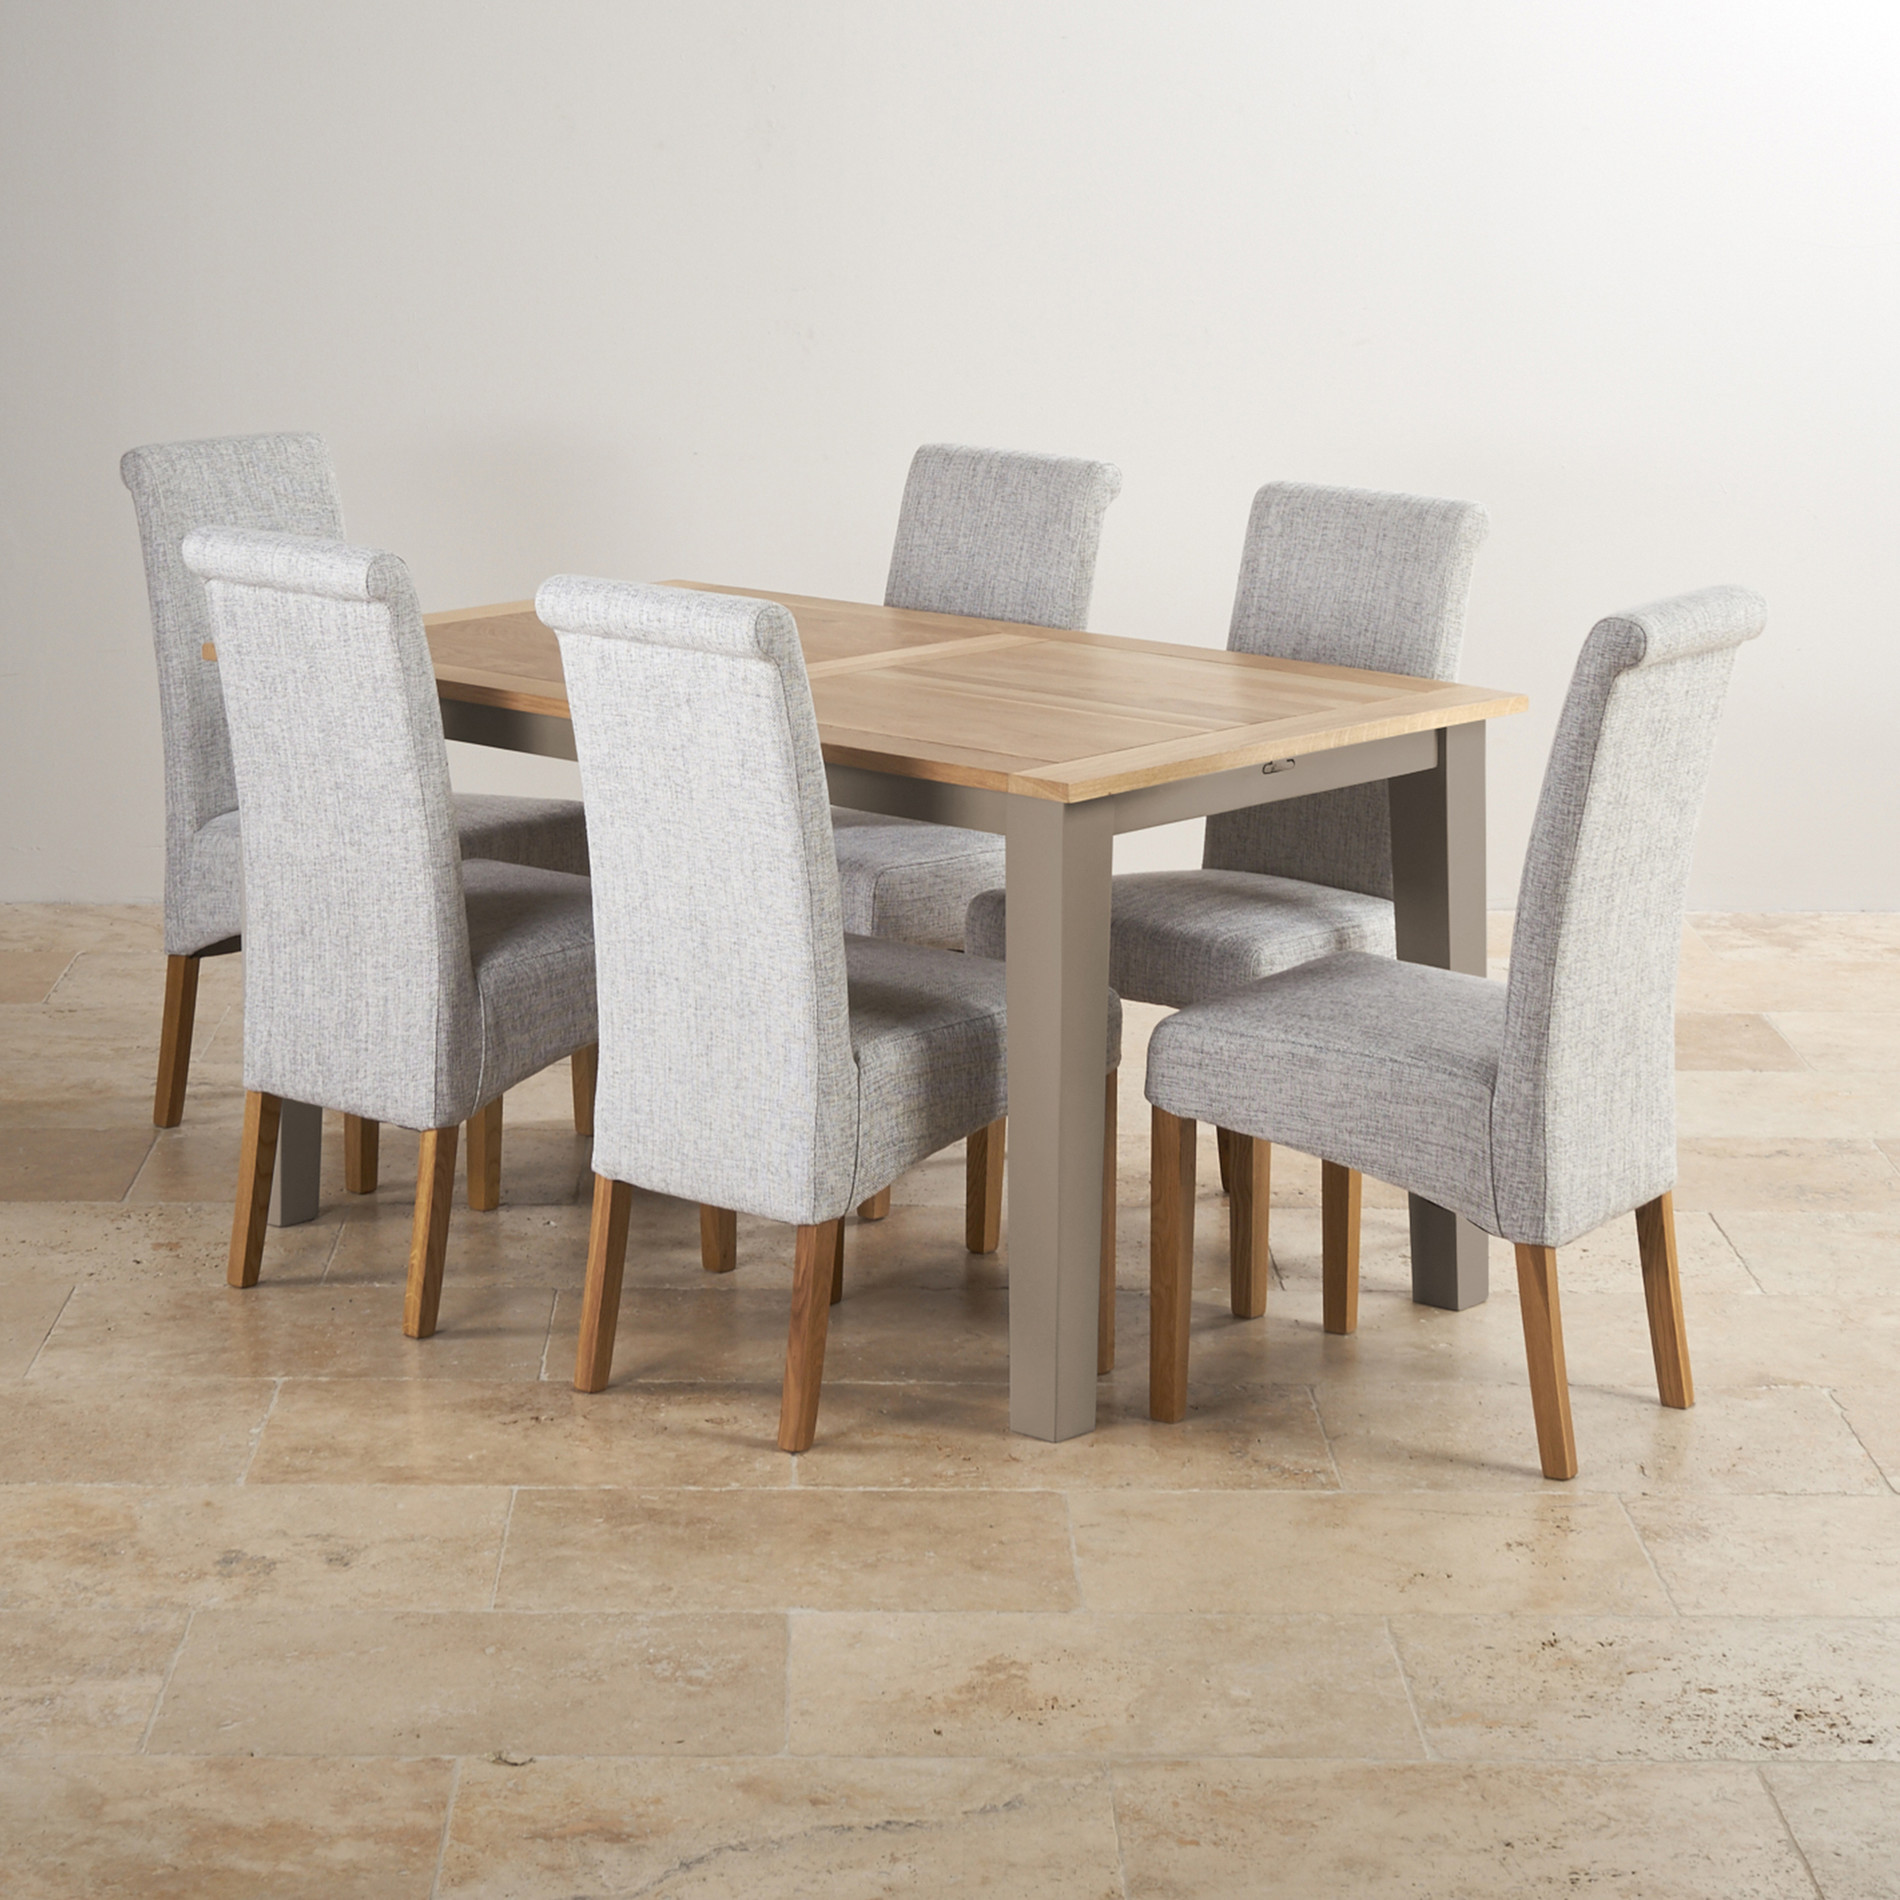 st ives light grey painted extending dining table 6 fabric chairs. Black Bedroom Furniture Sets. Home Design Ideas